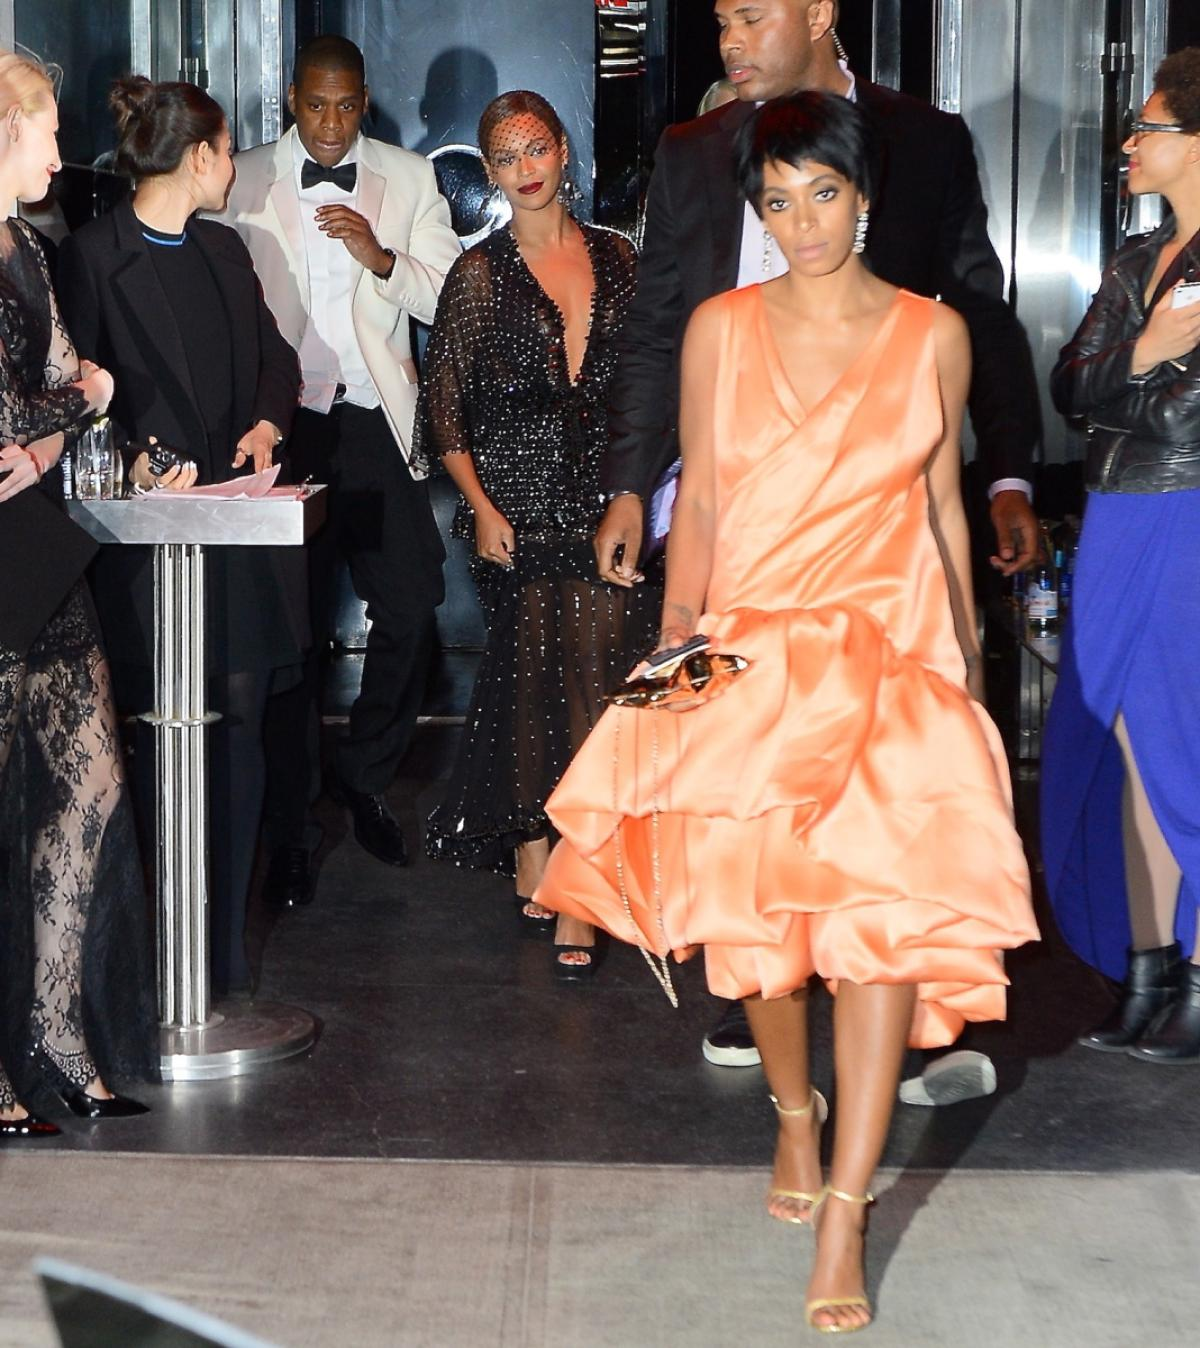 solange-kicks-punches-jay-z-met-gala-party